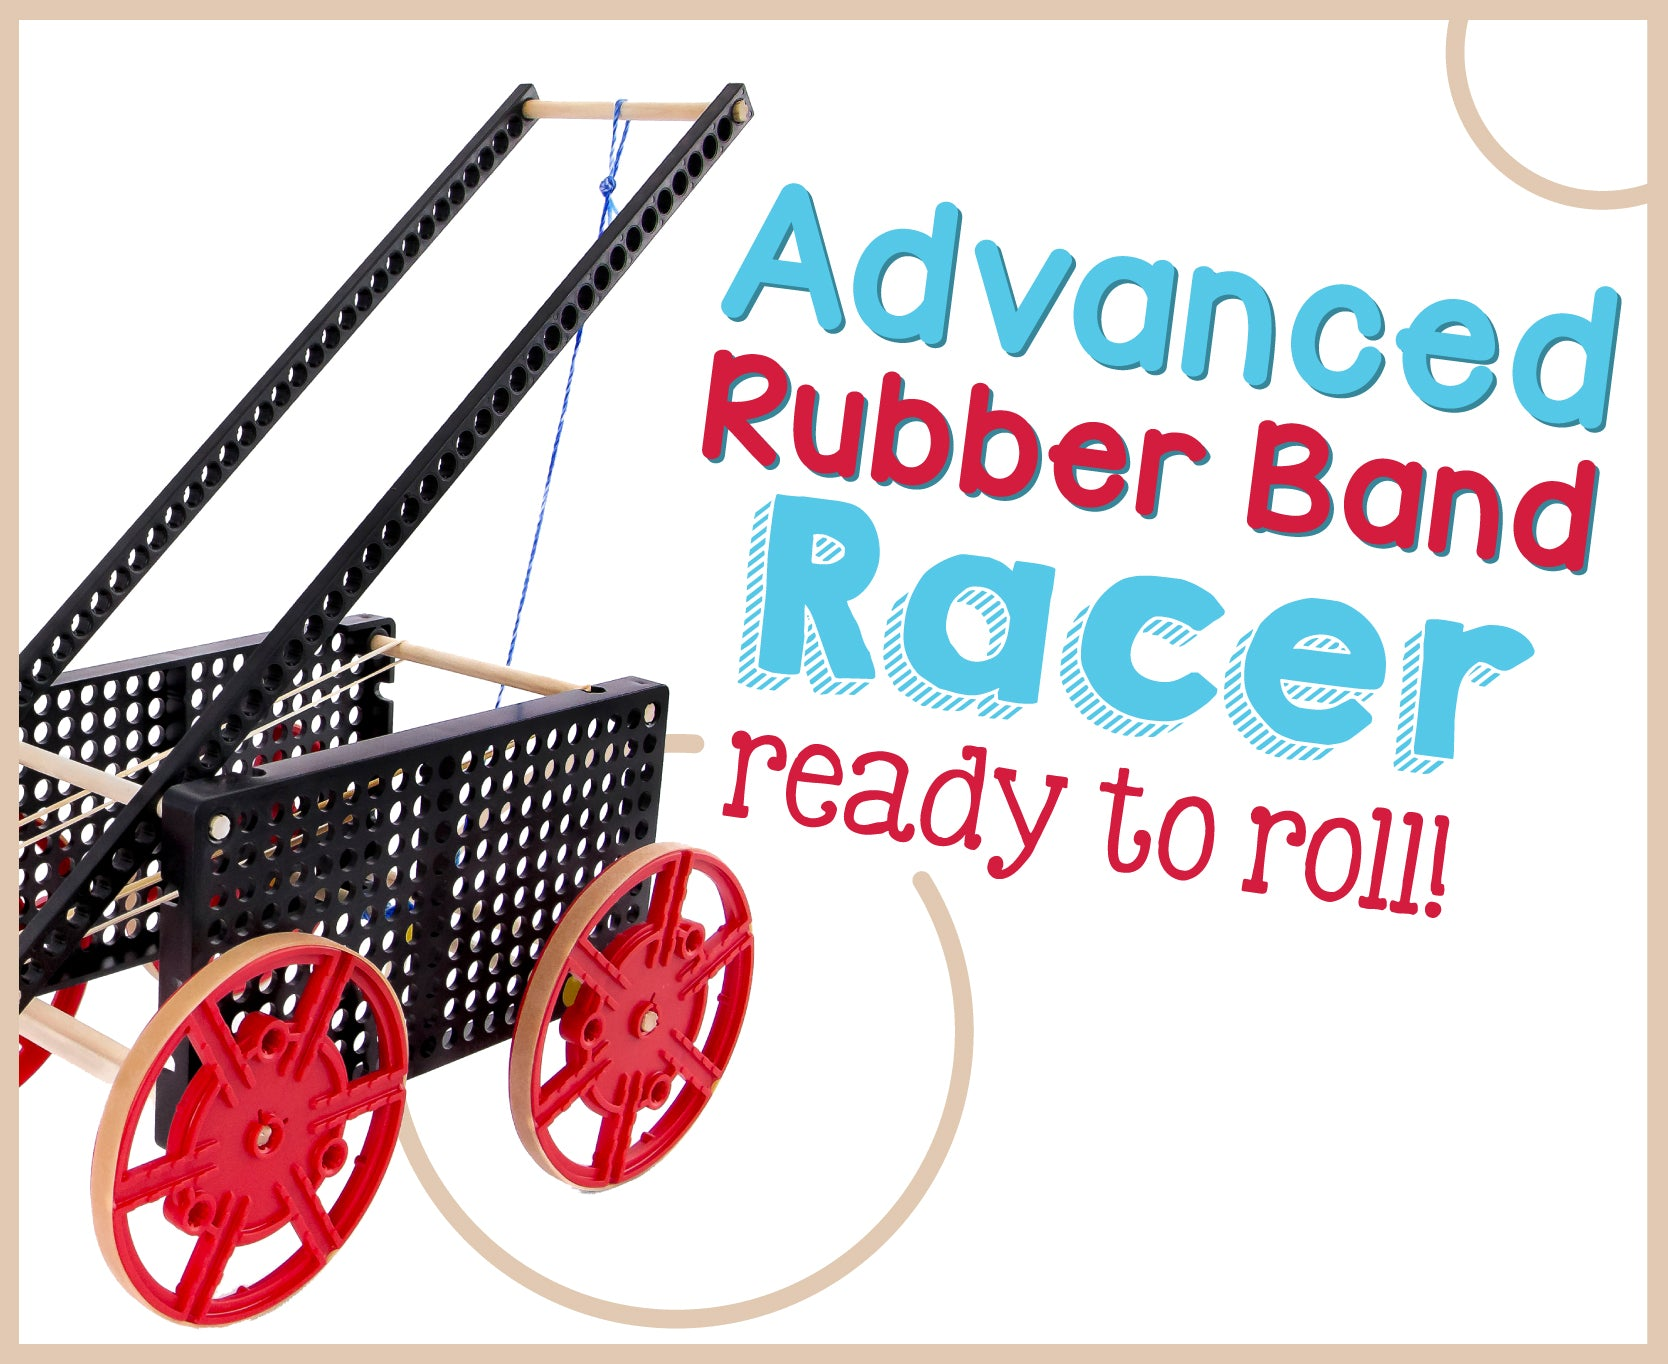 Advanced Rubber Band Racer